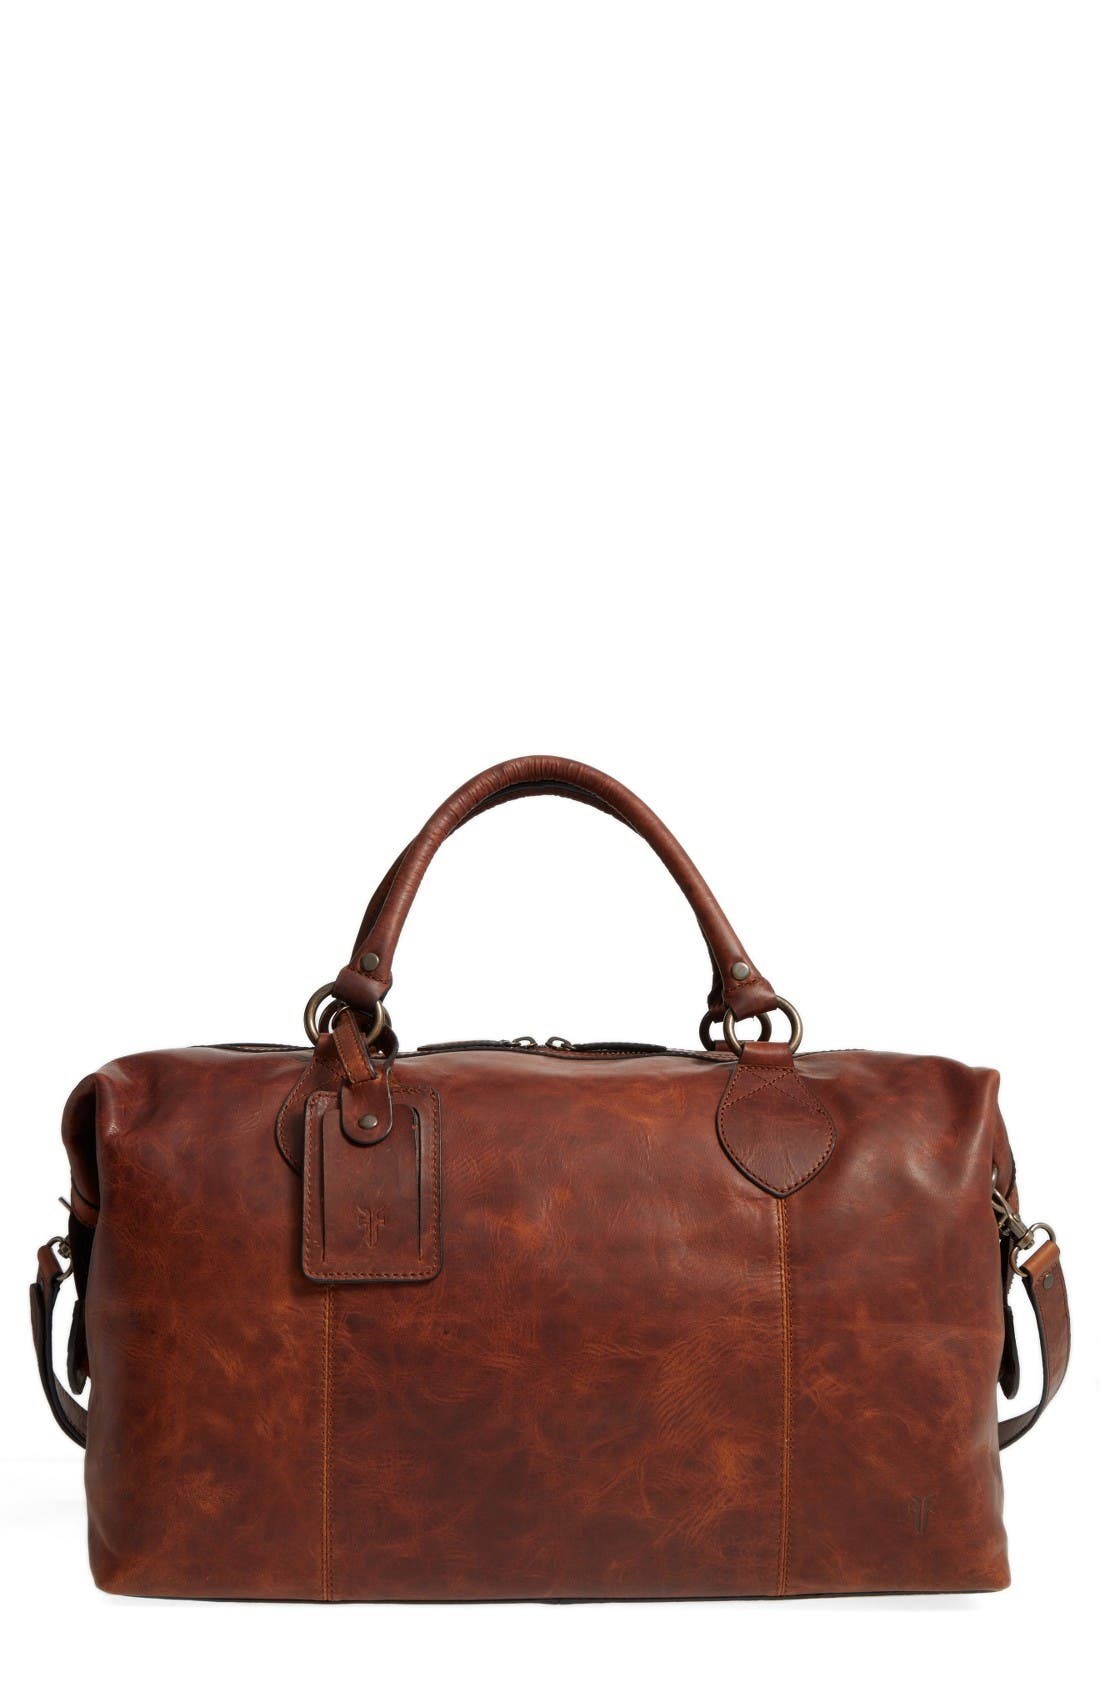 'Logan' Leather Overnight Bag - Brown (Online Only) in Cognac